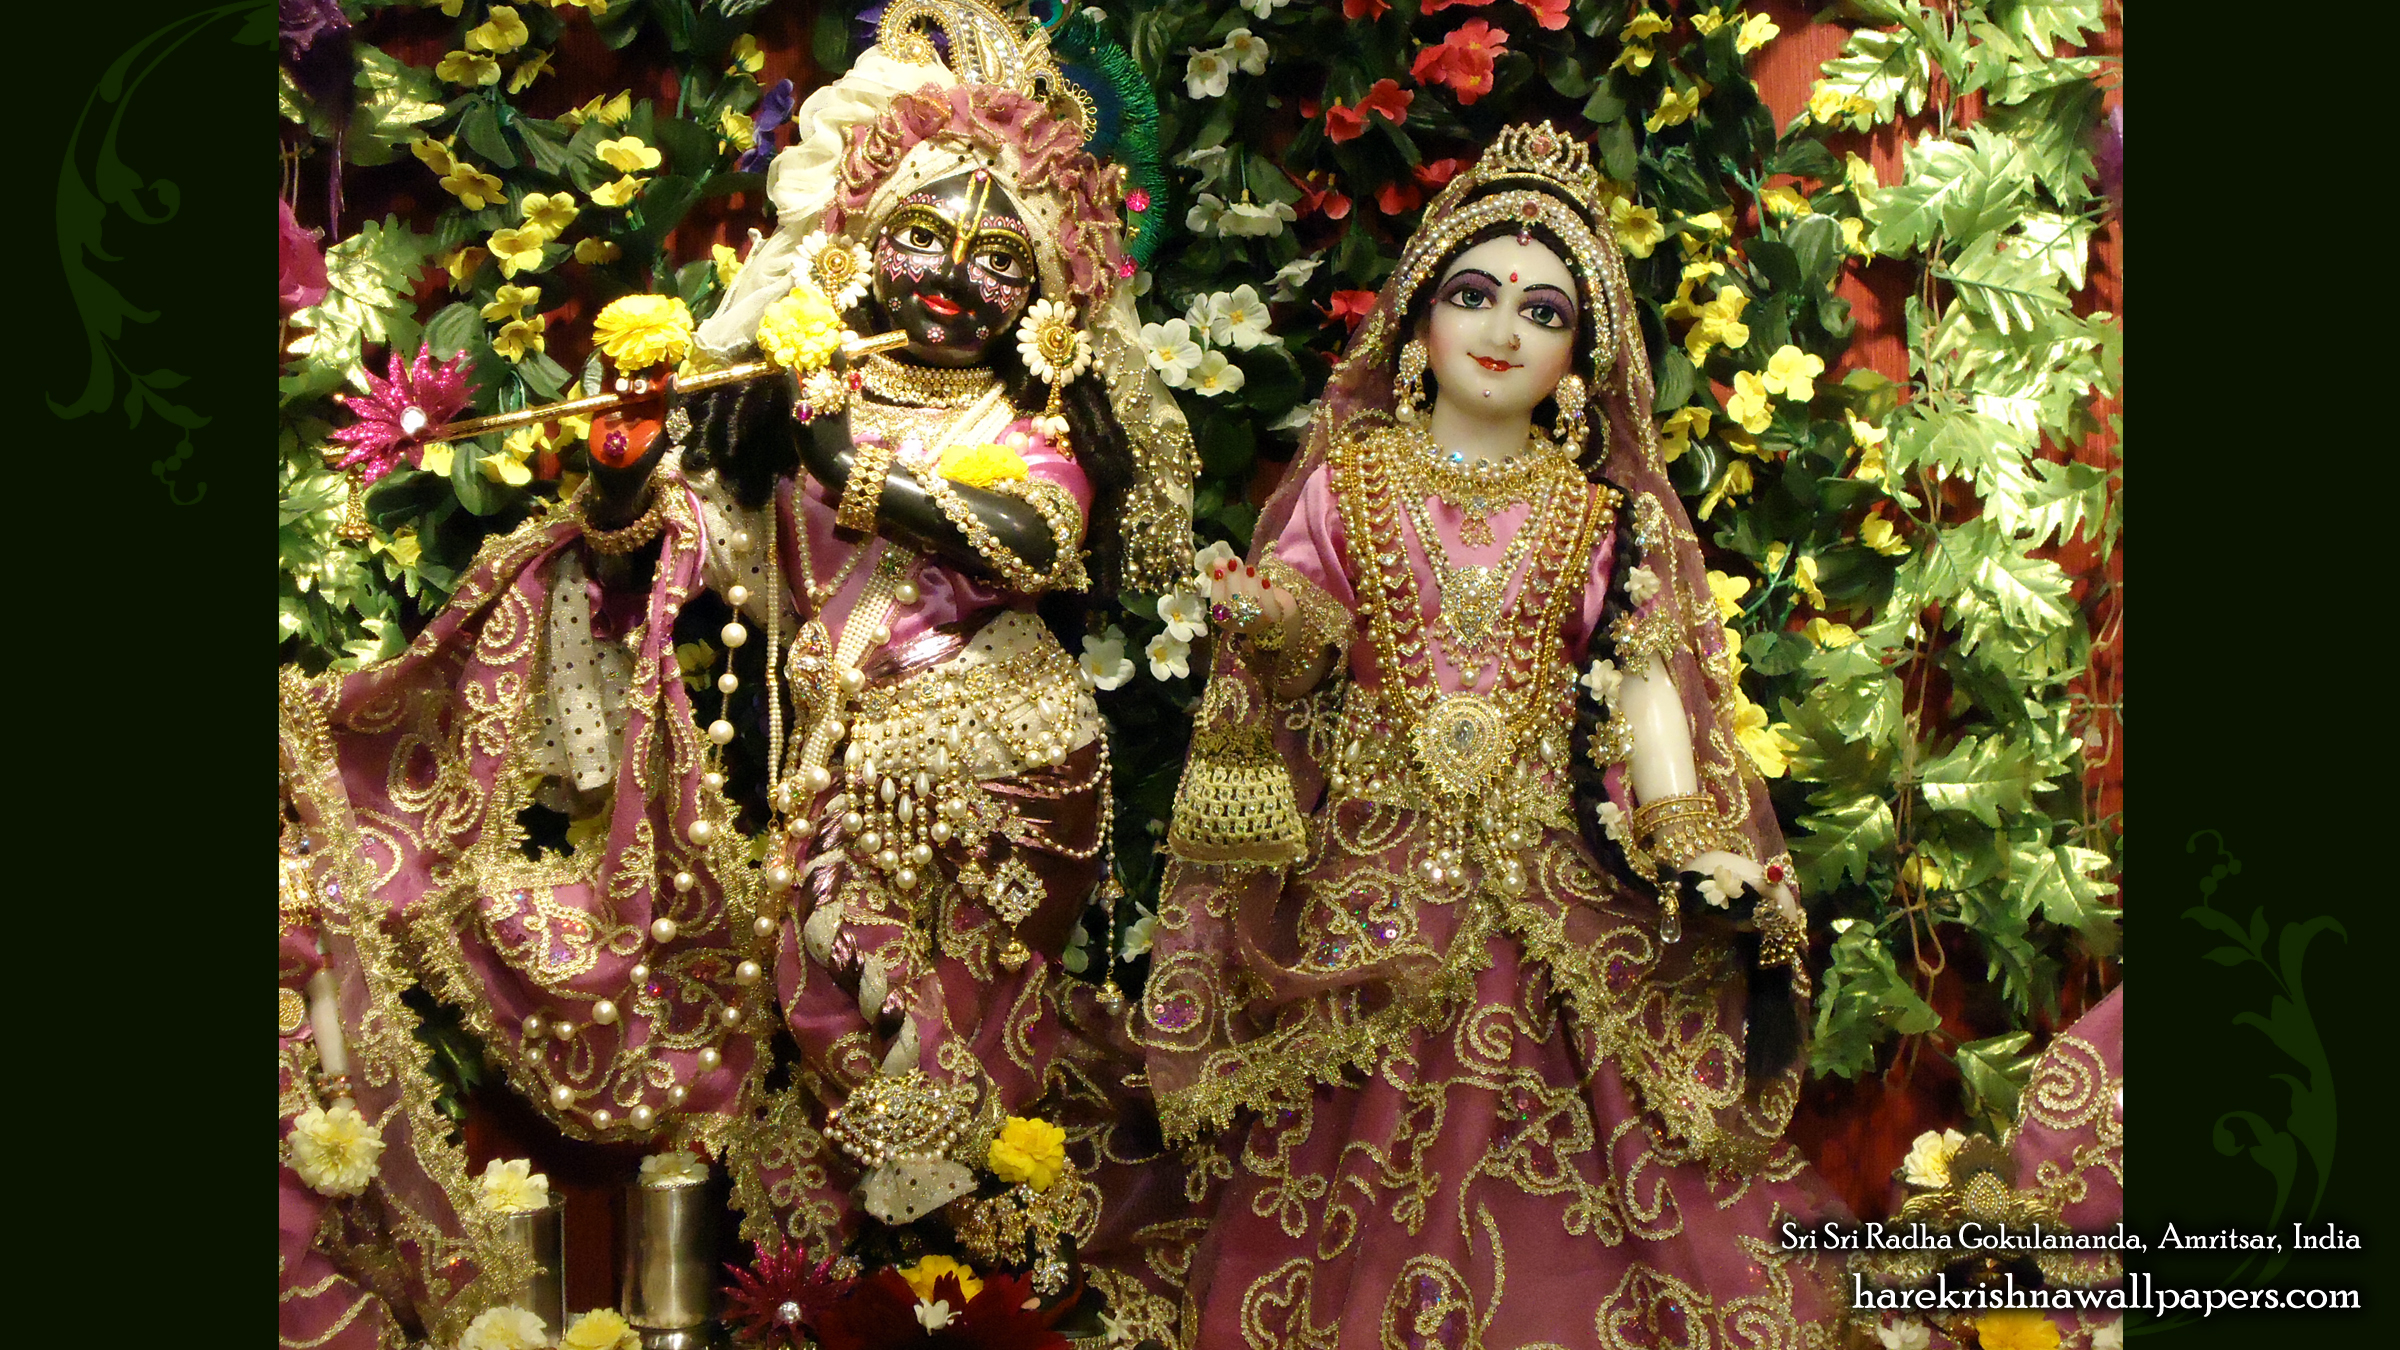 Sri Sri Radha Gokulananda Wallpaper (003) Size 2400x1350 Download